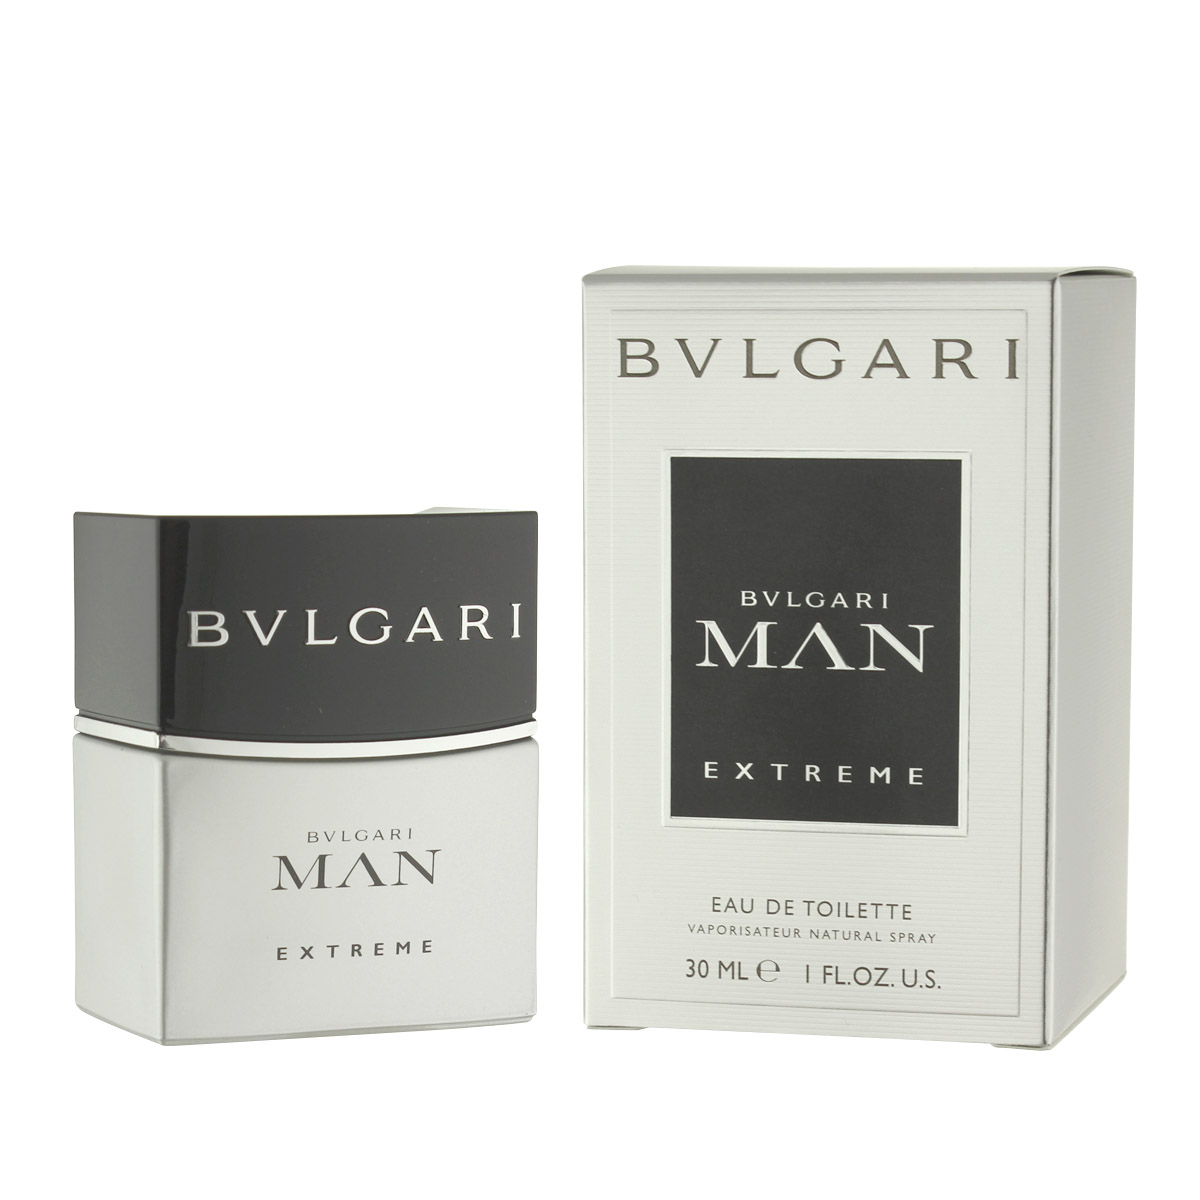 Bvlgari Man Extreme EDT 30 ml M